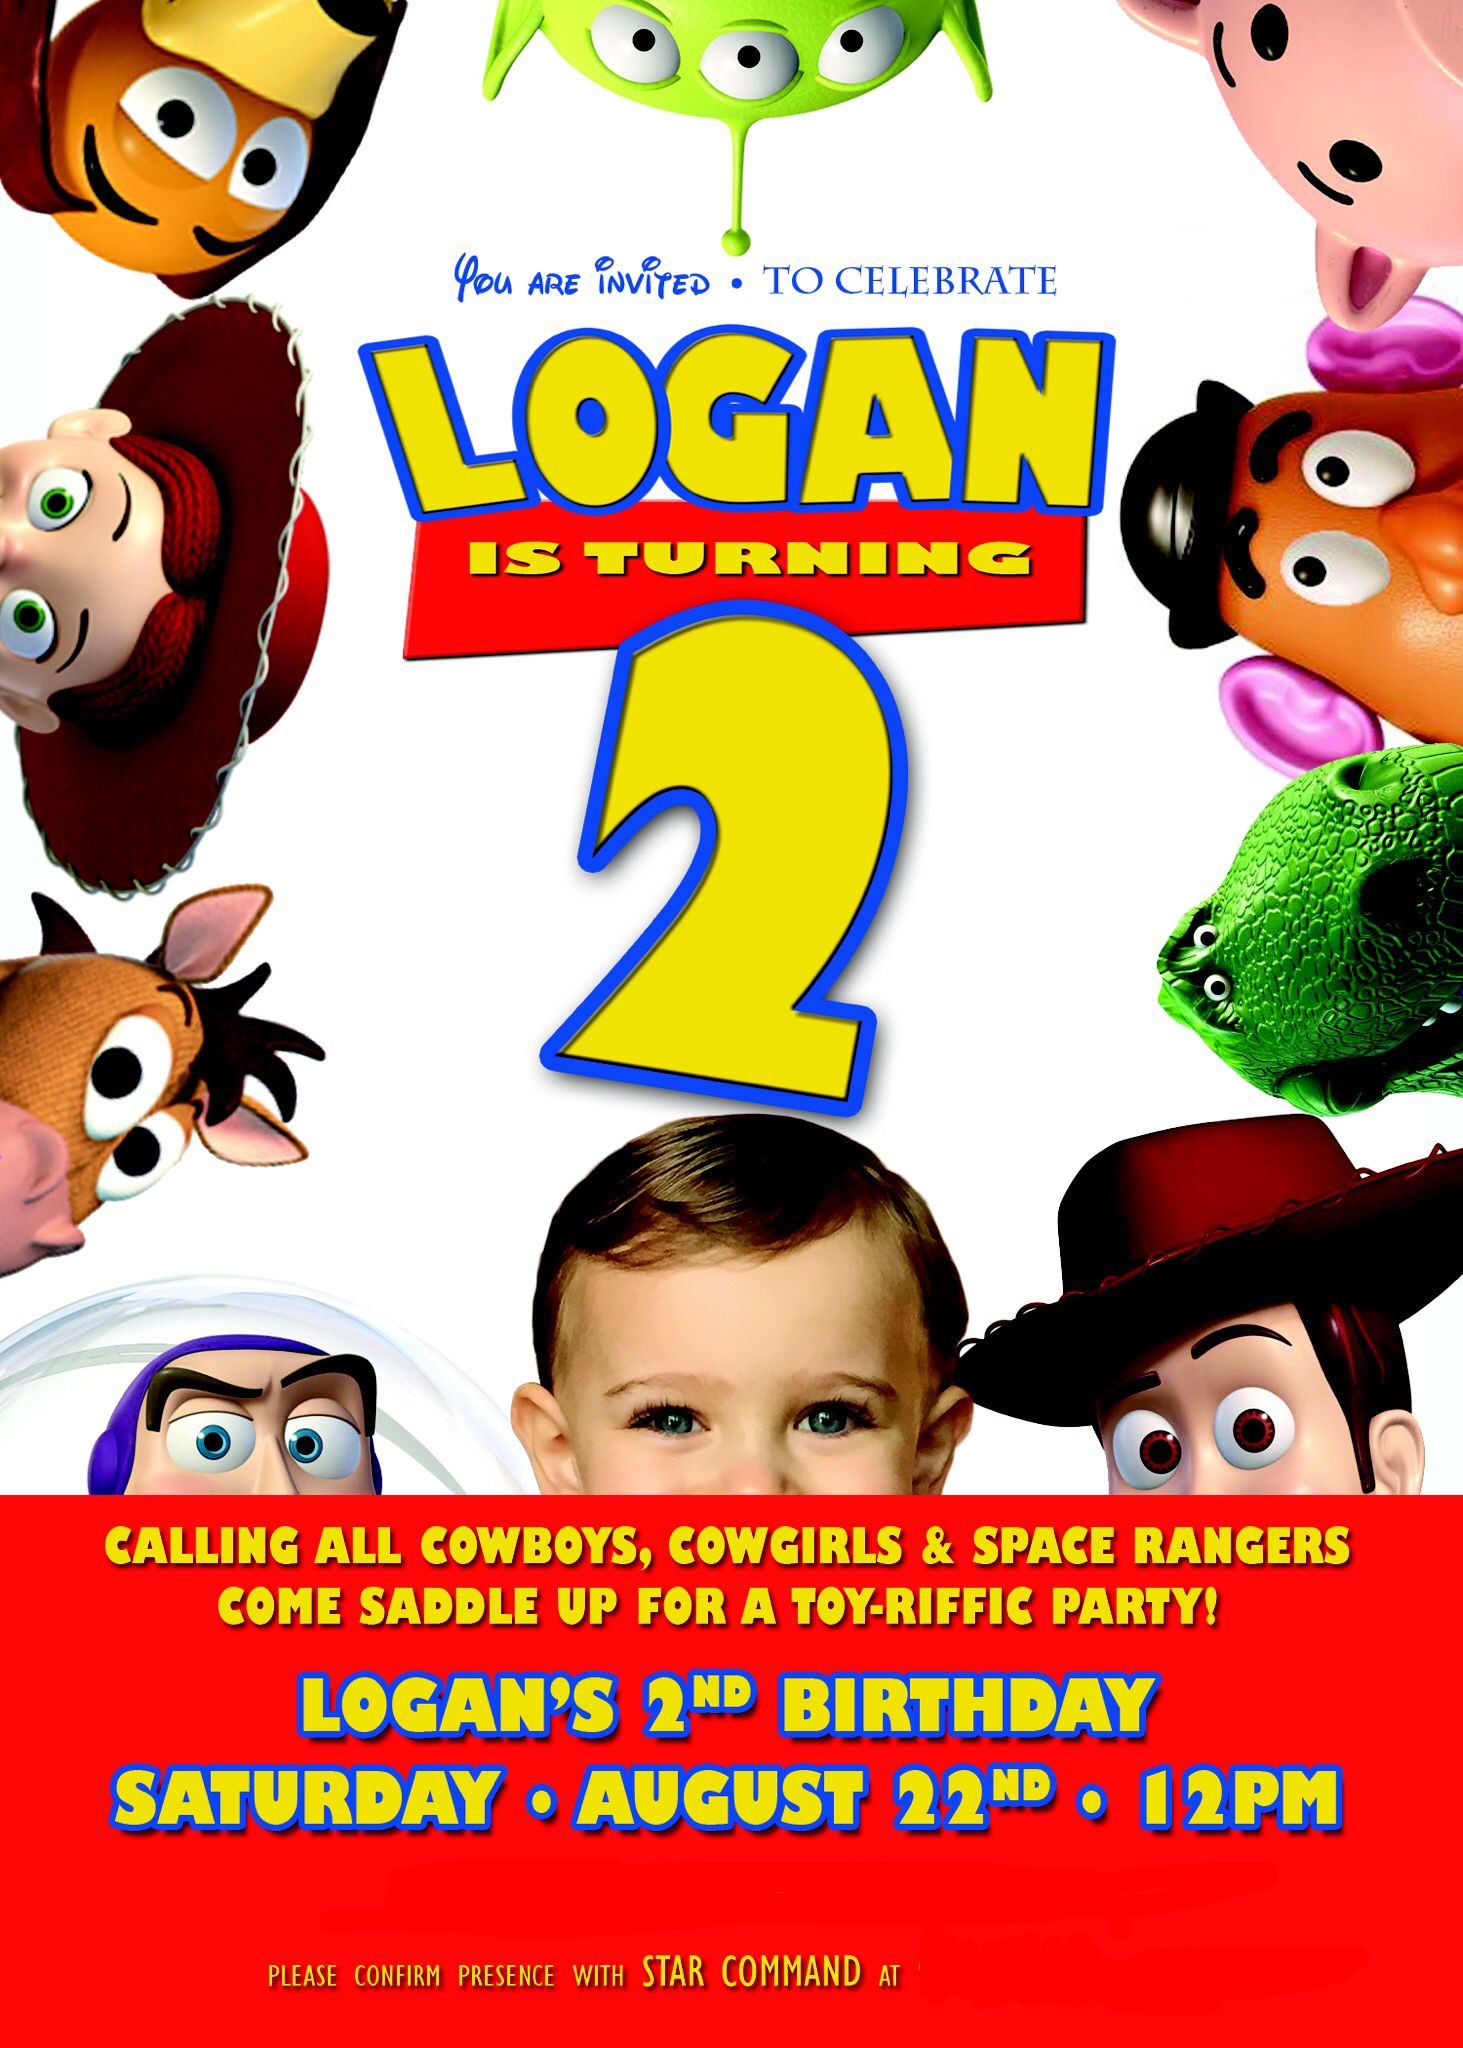 The invitation from Logan's Toy Story party!